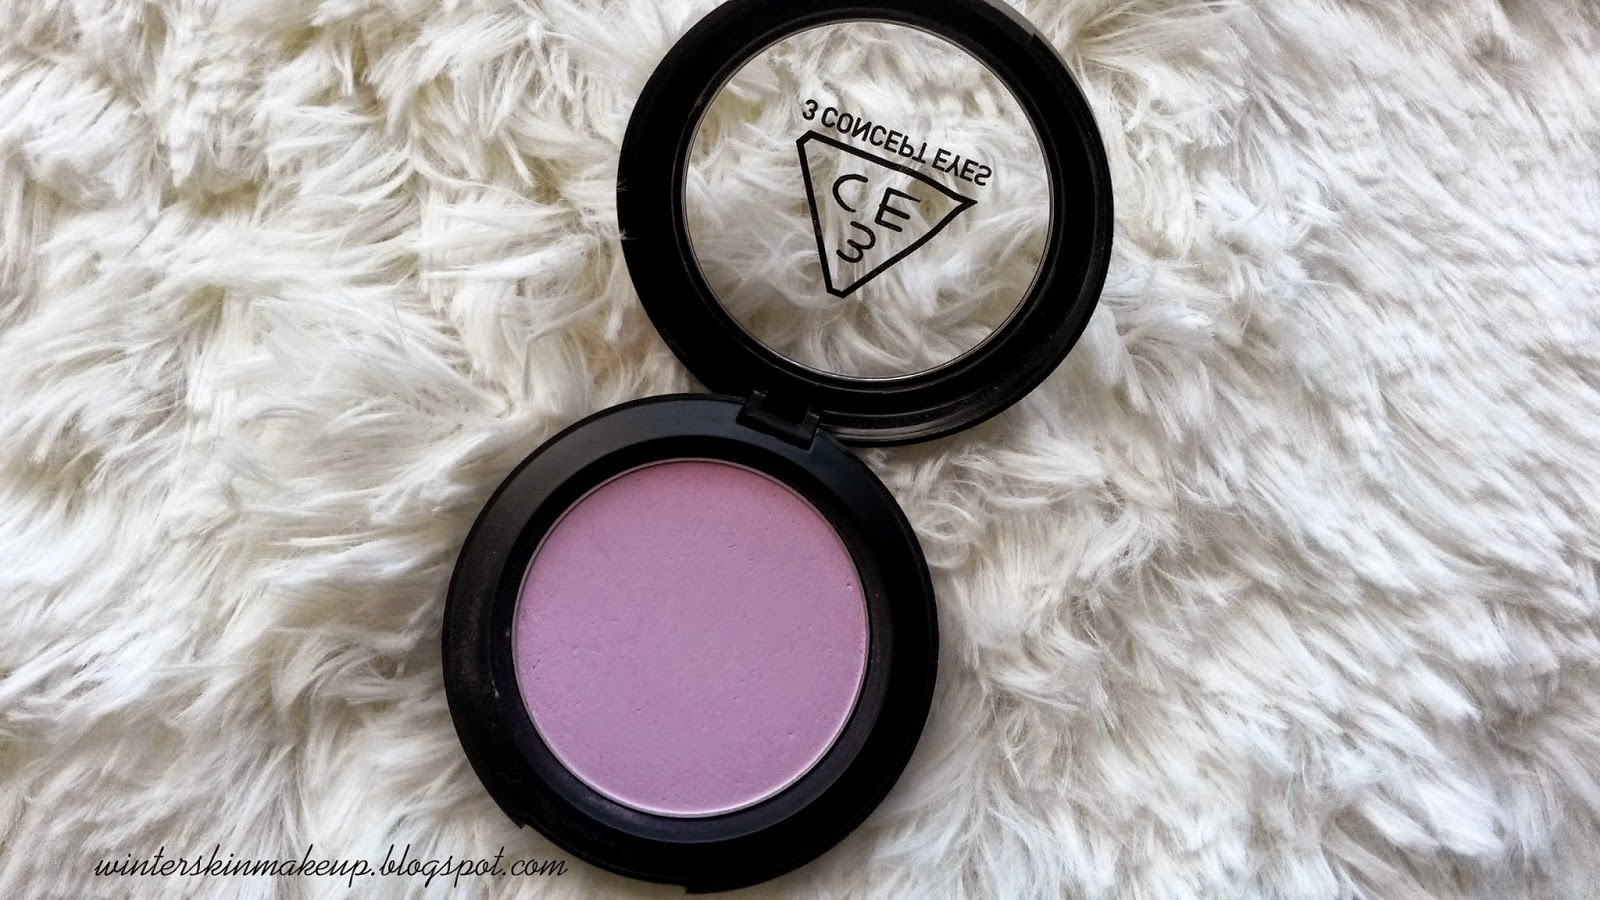 3 CONCEPT EYES Face Blush Whipping Cream